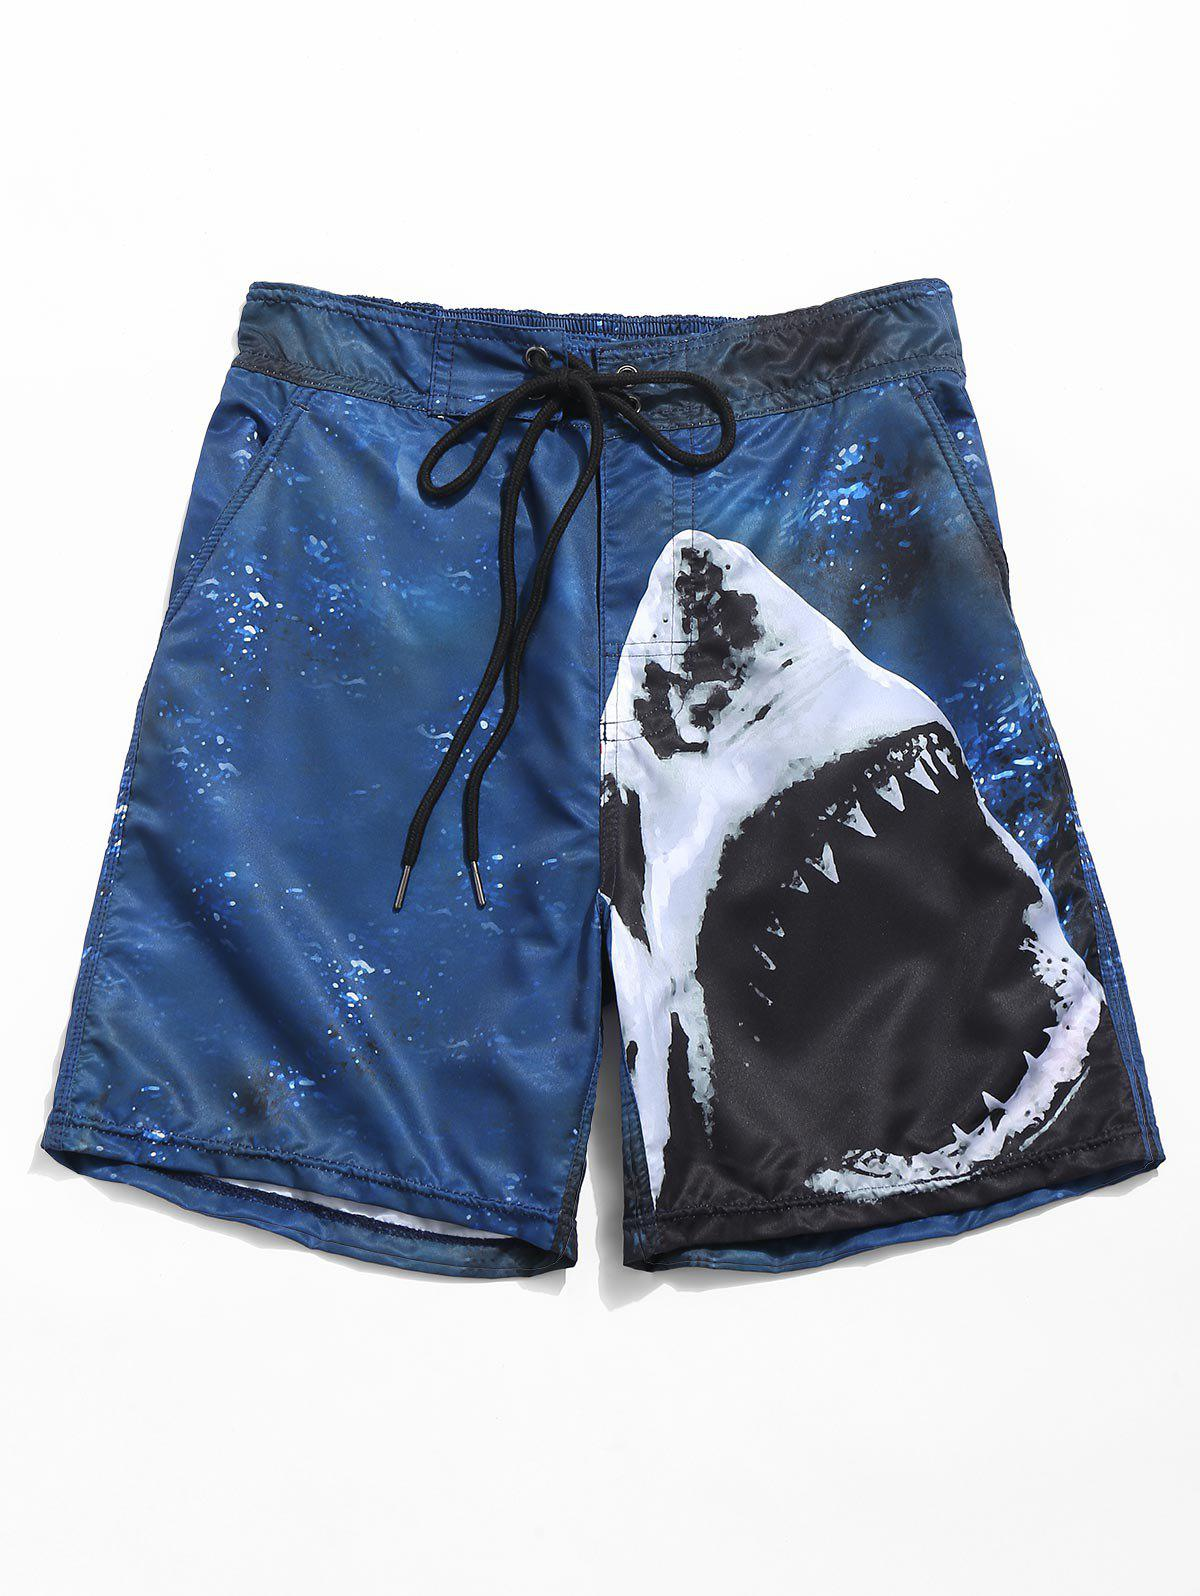 Ocean Shark Print Board Shorts